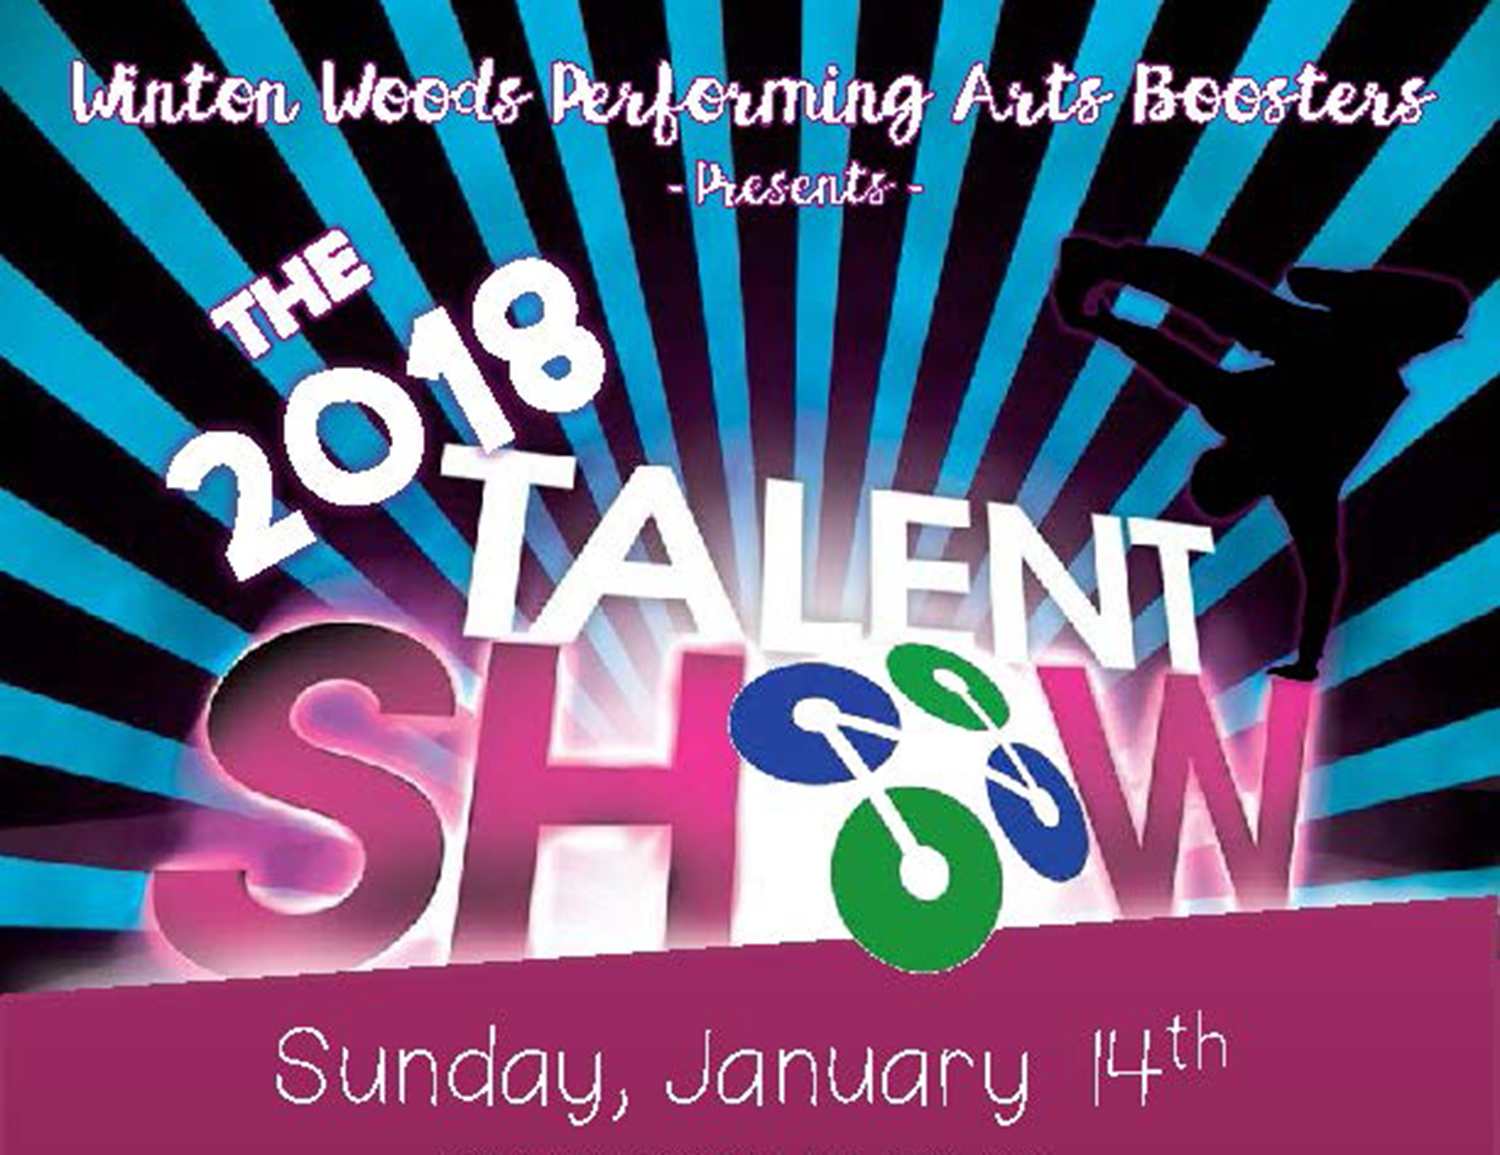 Performing Arts Boosters 2018 Talent Show  Logo